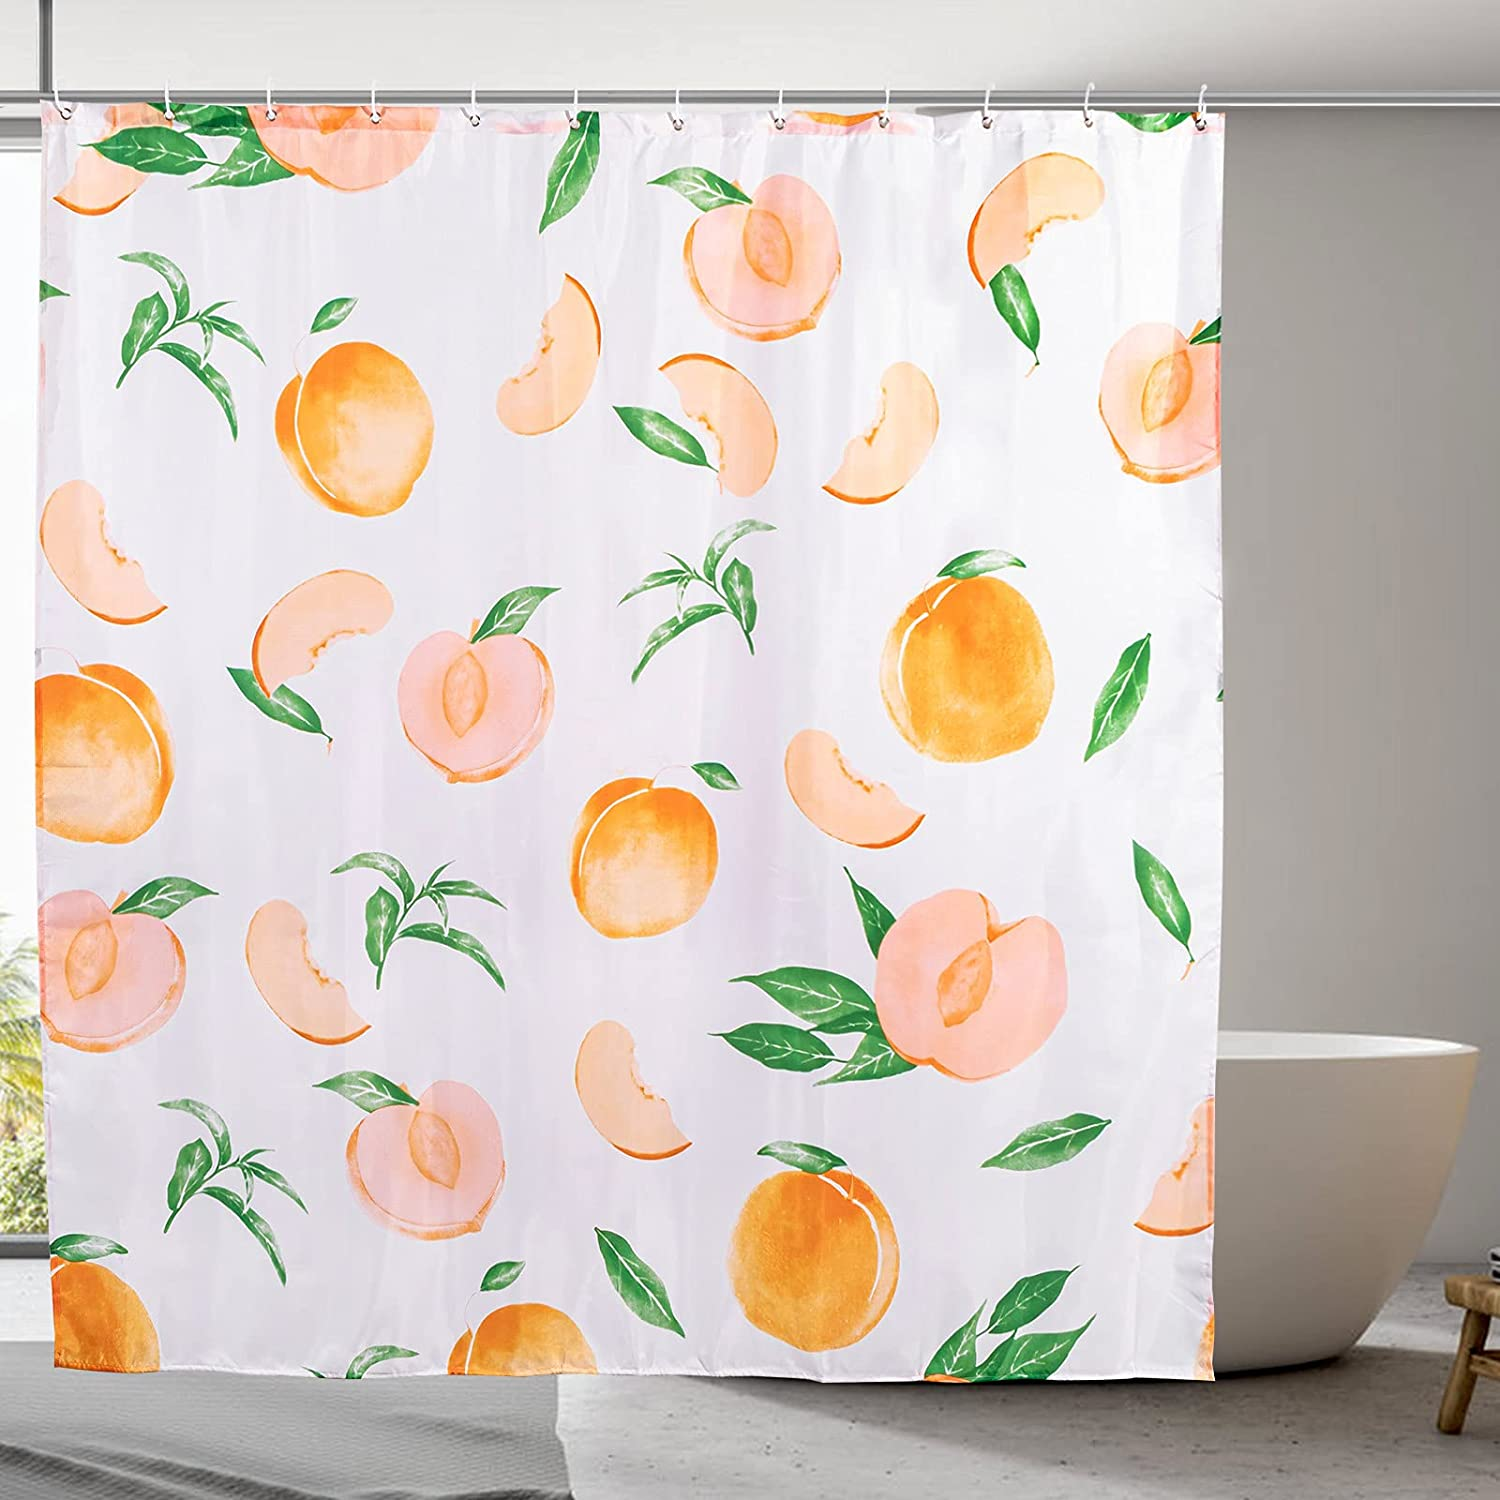 MoFCravy Peach Shower Curtain for Bathroom, Cute Fruit Shower Curtain Set with 12 Hooks, Colorful Shower Curtain Bathroom Decor of Waterproof Fabric Material, 72''×72'', Bright Orange